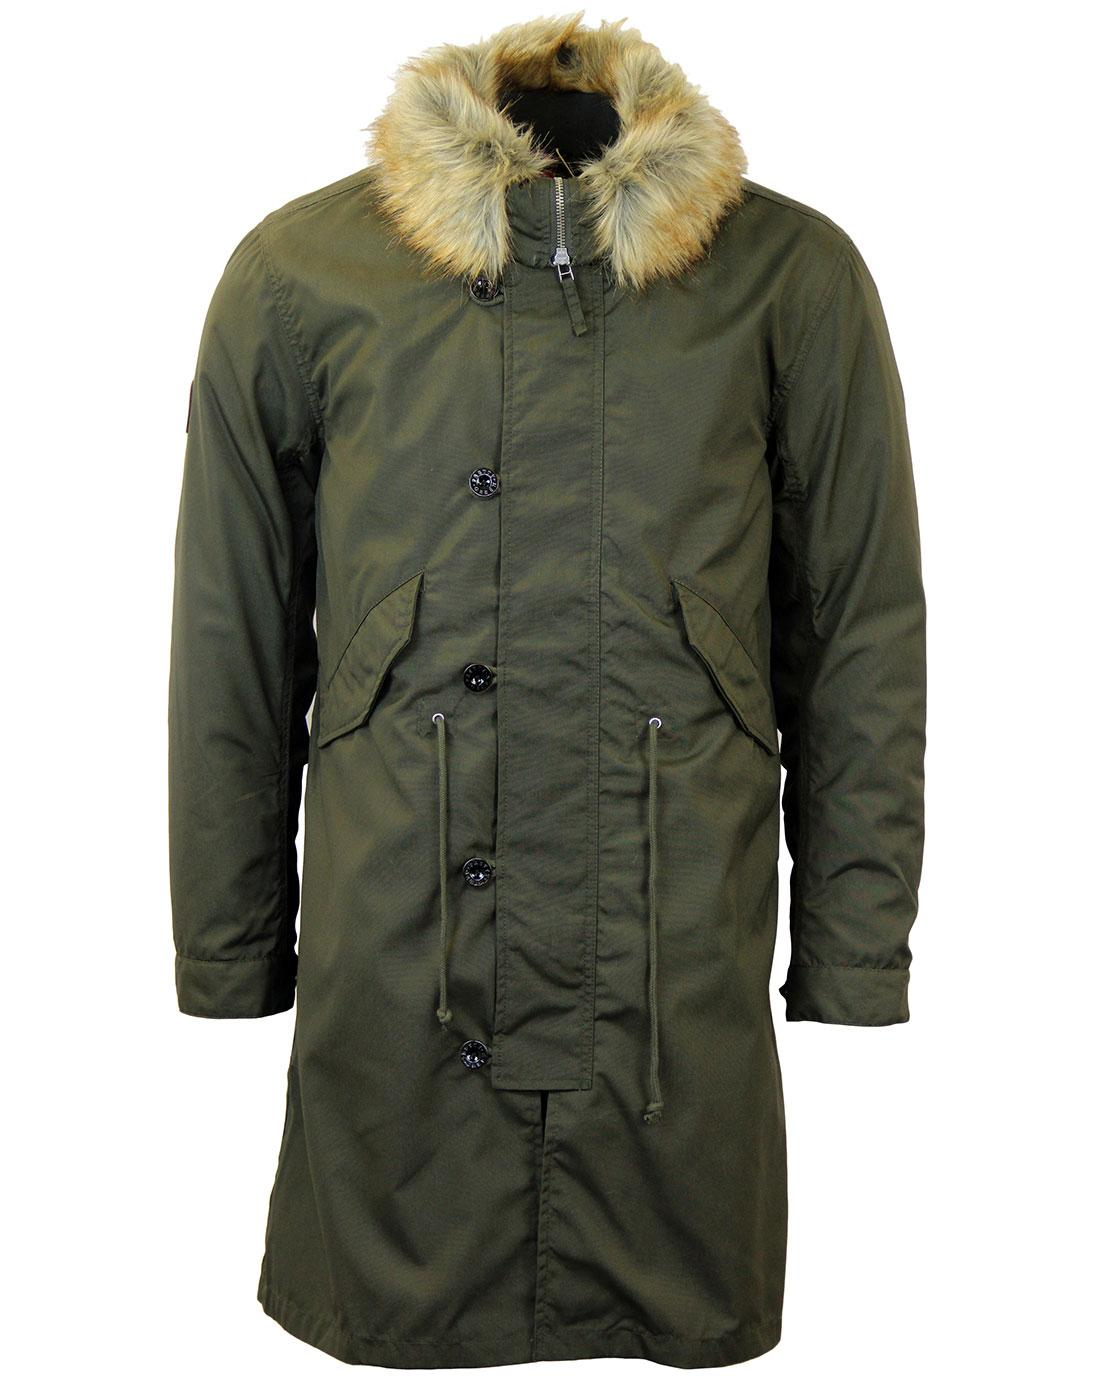 Pretty Green Parka | Stunning Pretty Green Parka's Available | Free UK Delivery On All Orders. Women. Marmalade KHAKI / BLACK TWILL FUR HOODED PARKA - Signature leather Pretty Green zip puller Composition: % cotton Available in Khaki or Black: SIZING | .